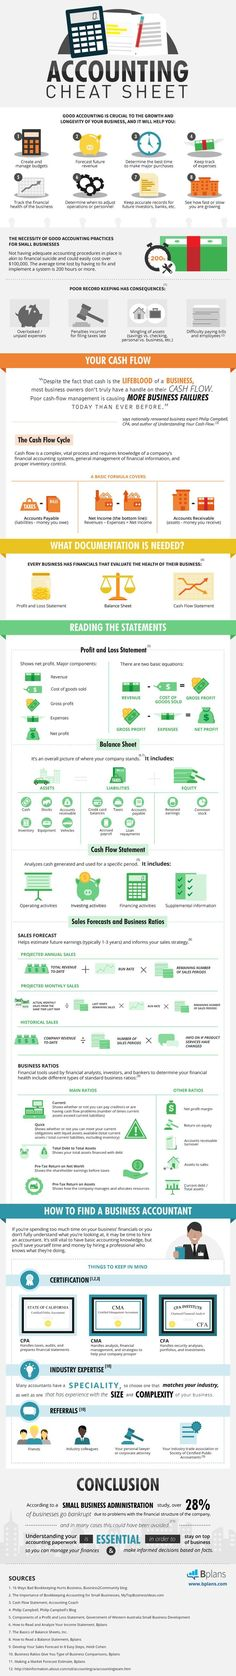 Accounting-Basics-Cheat-Sheet. Get your finances in order for 2017! #ReflectingFinances #Robinality